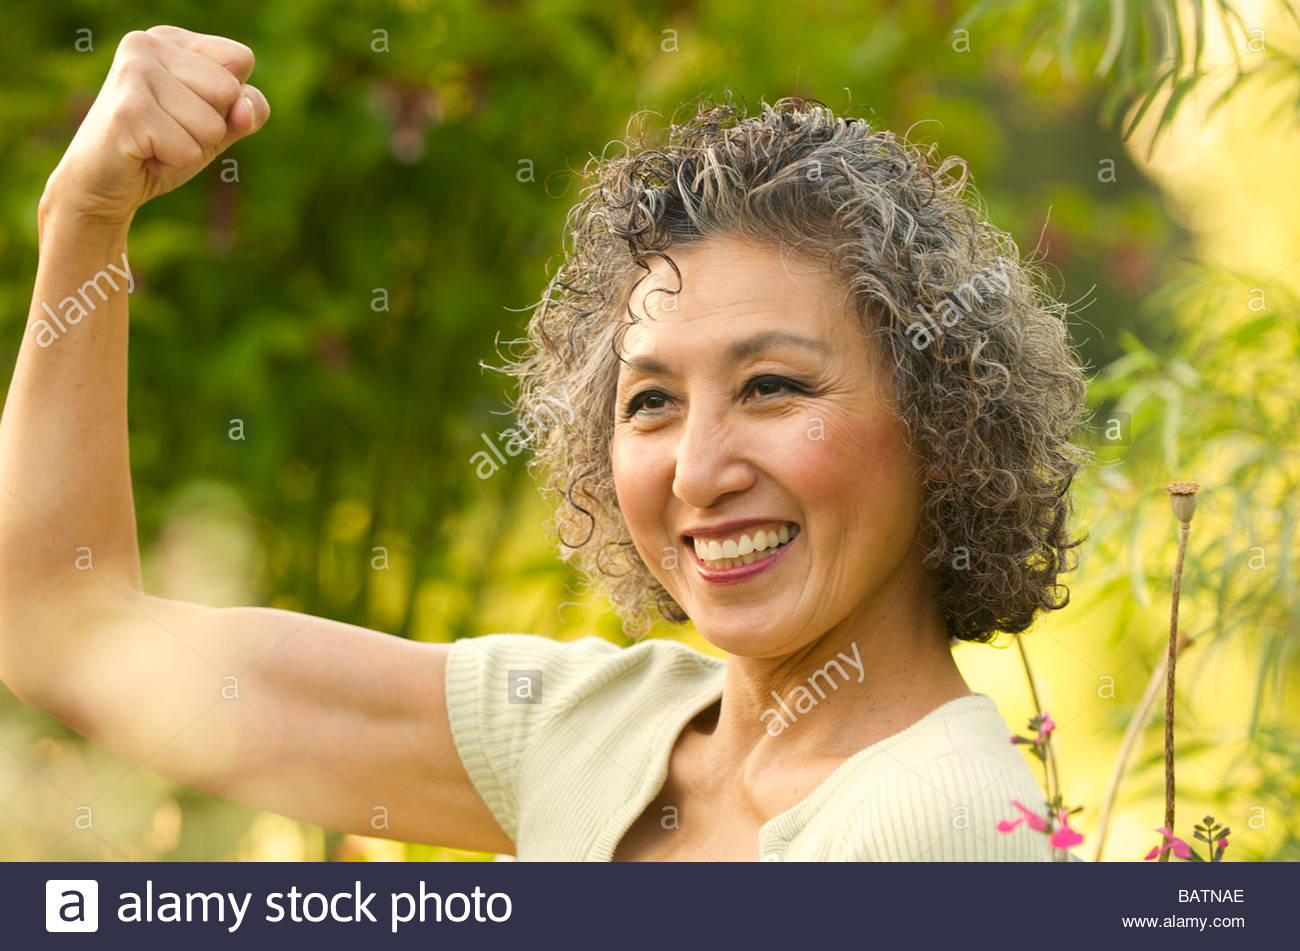 Asian woman flexing biceps in garden - Stock Image